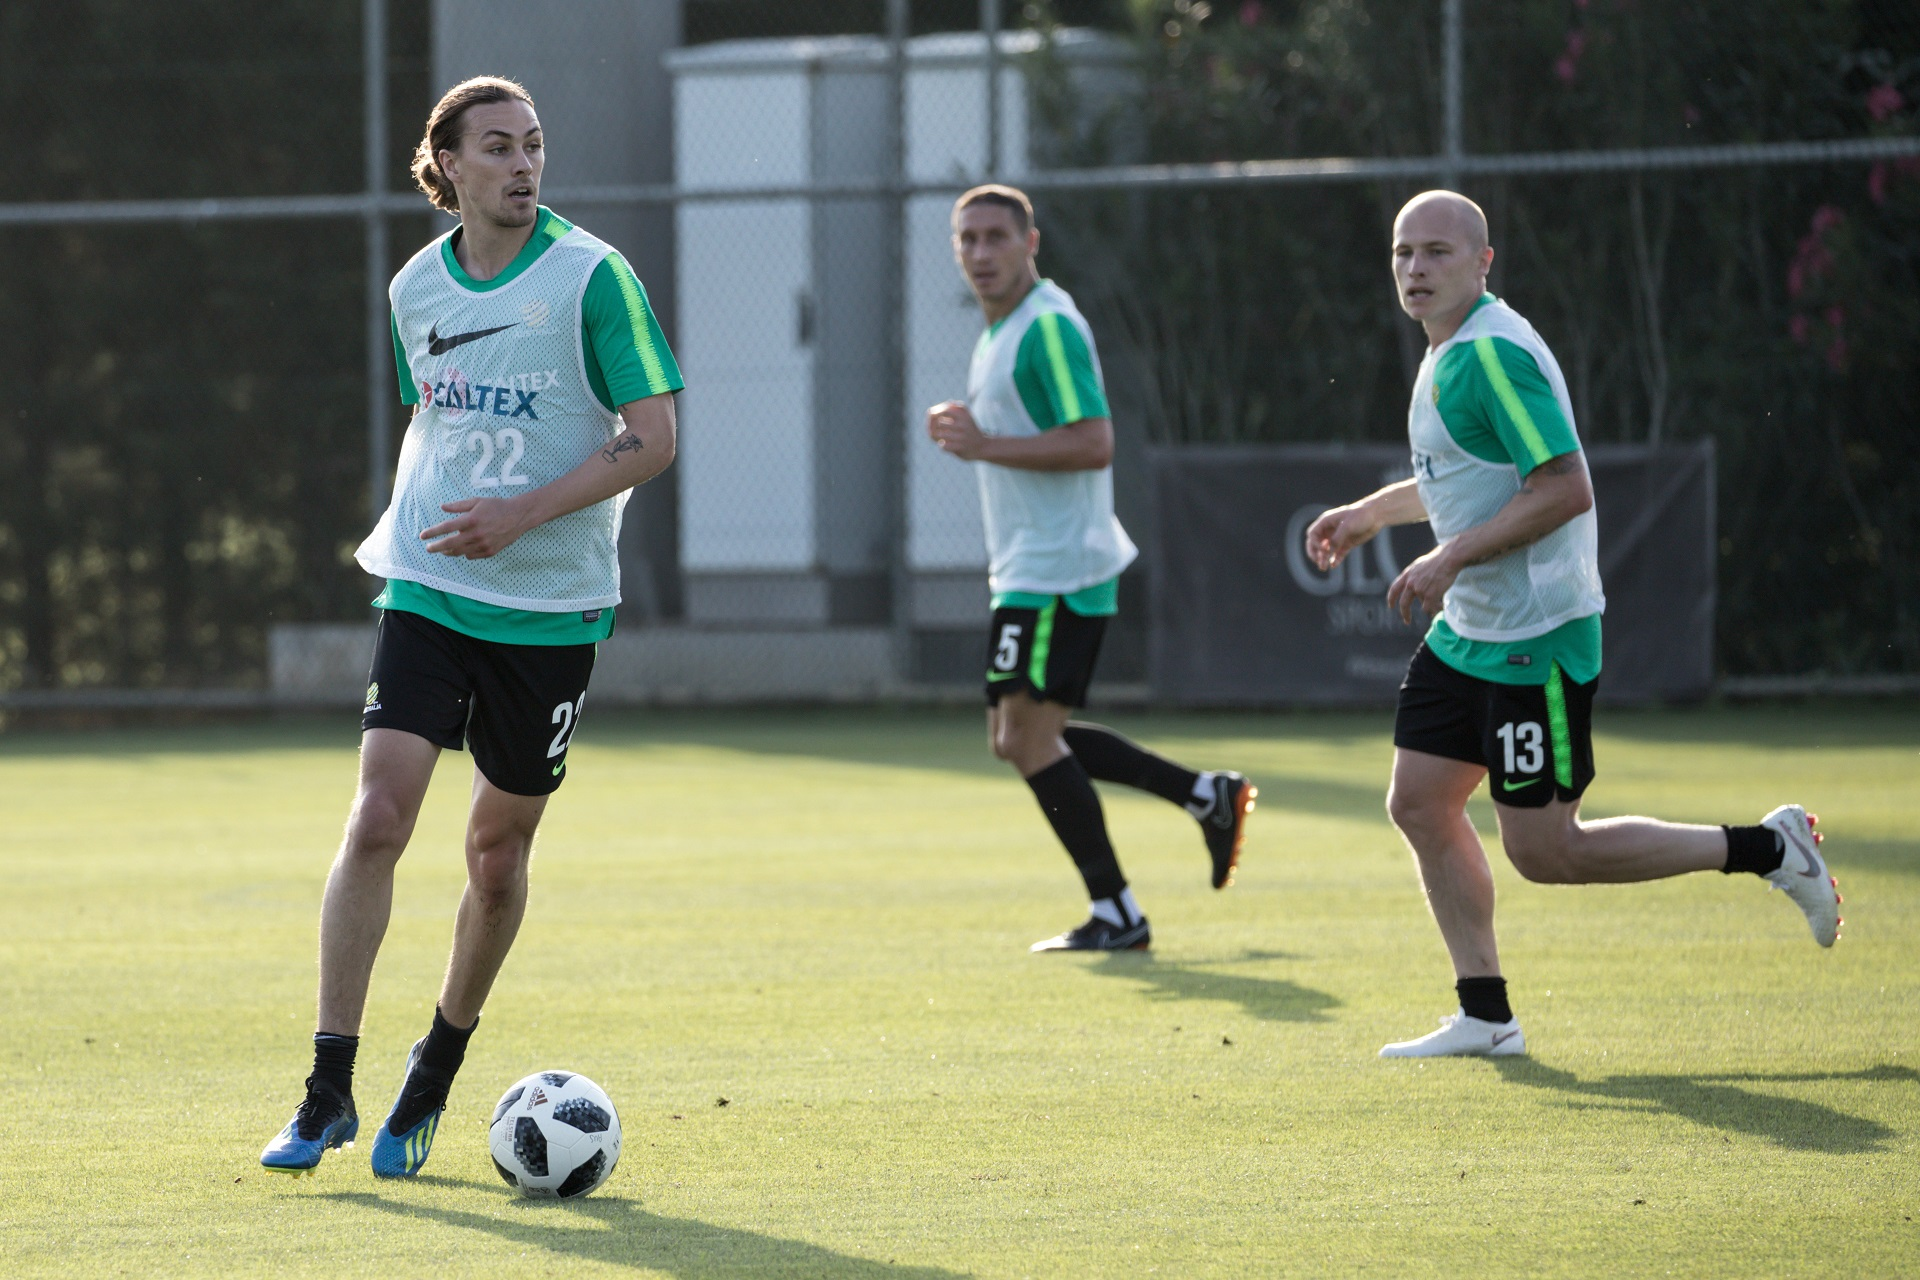 Jackson Irvine during the training game